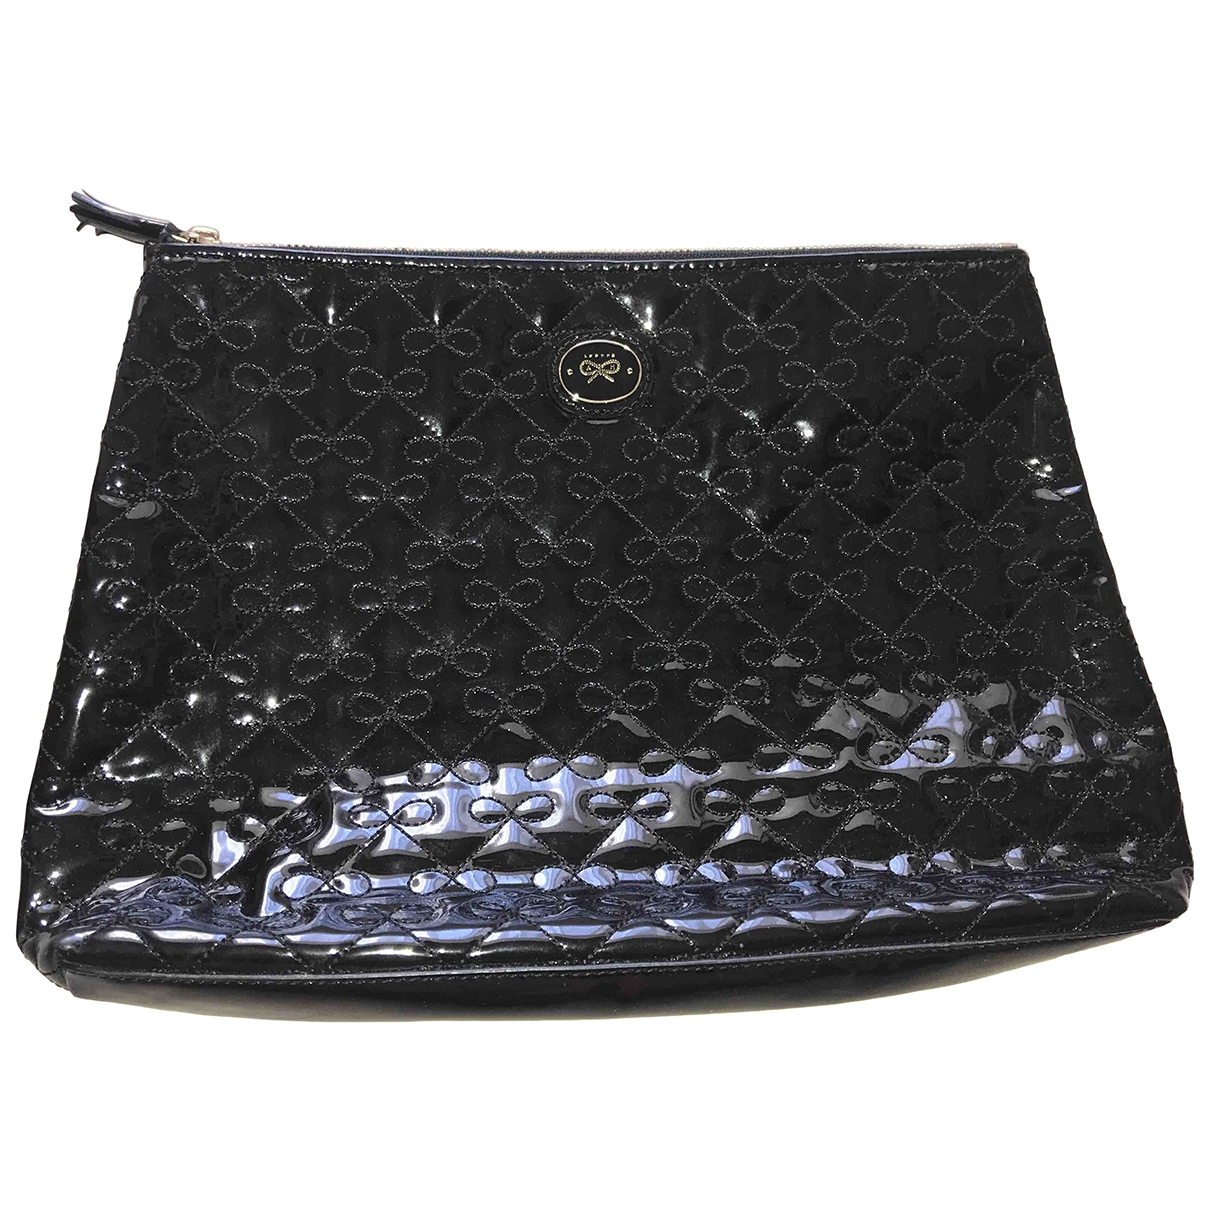 Anya Hindmarch \N Black Patent leather Clutch bag for Women \N